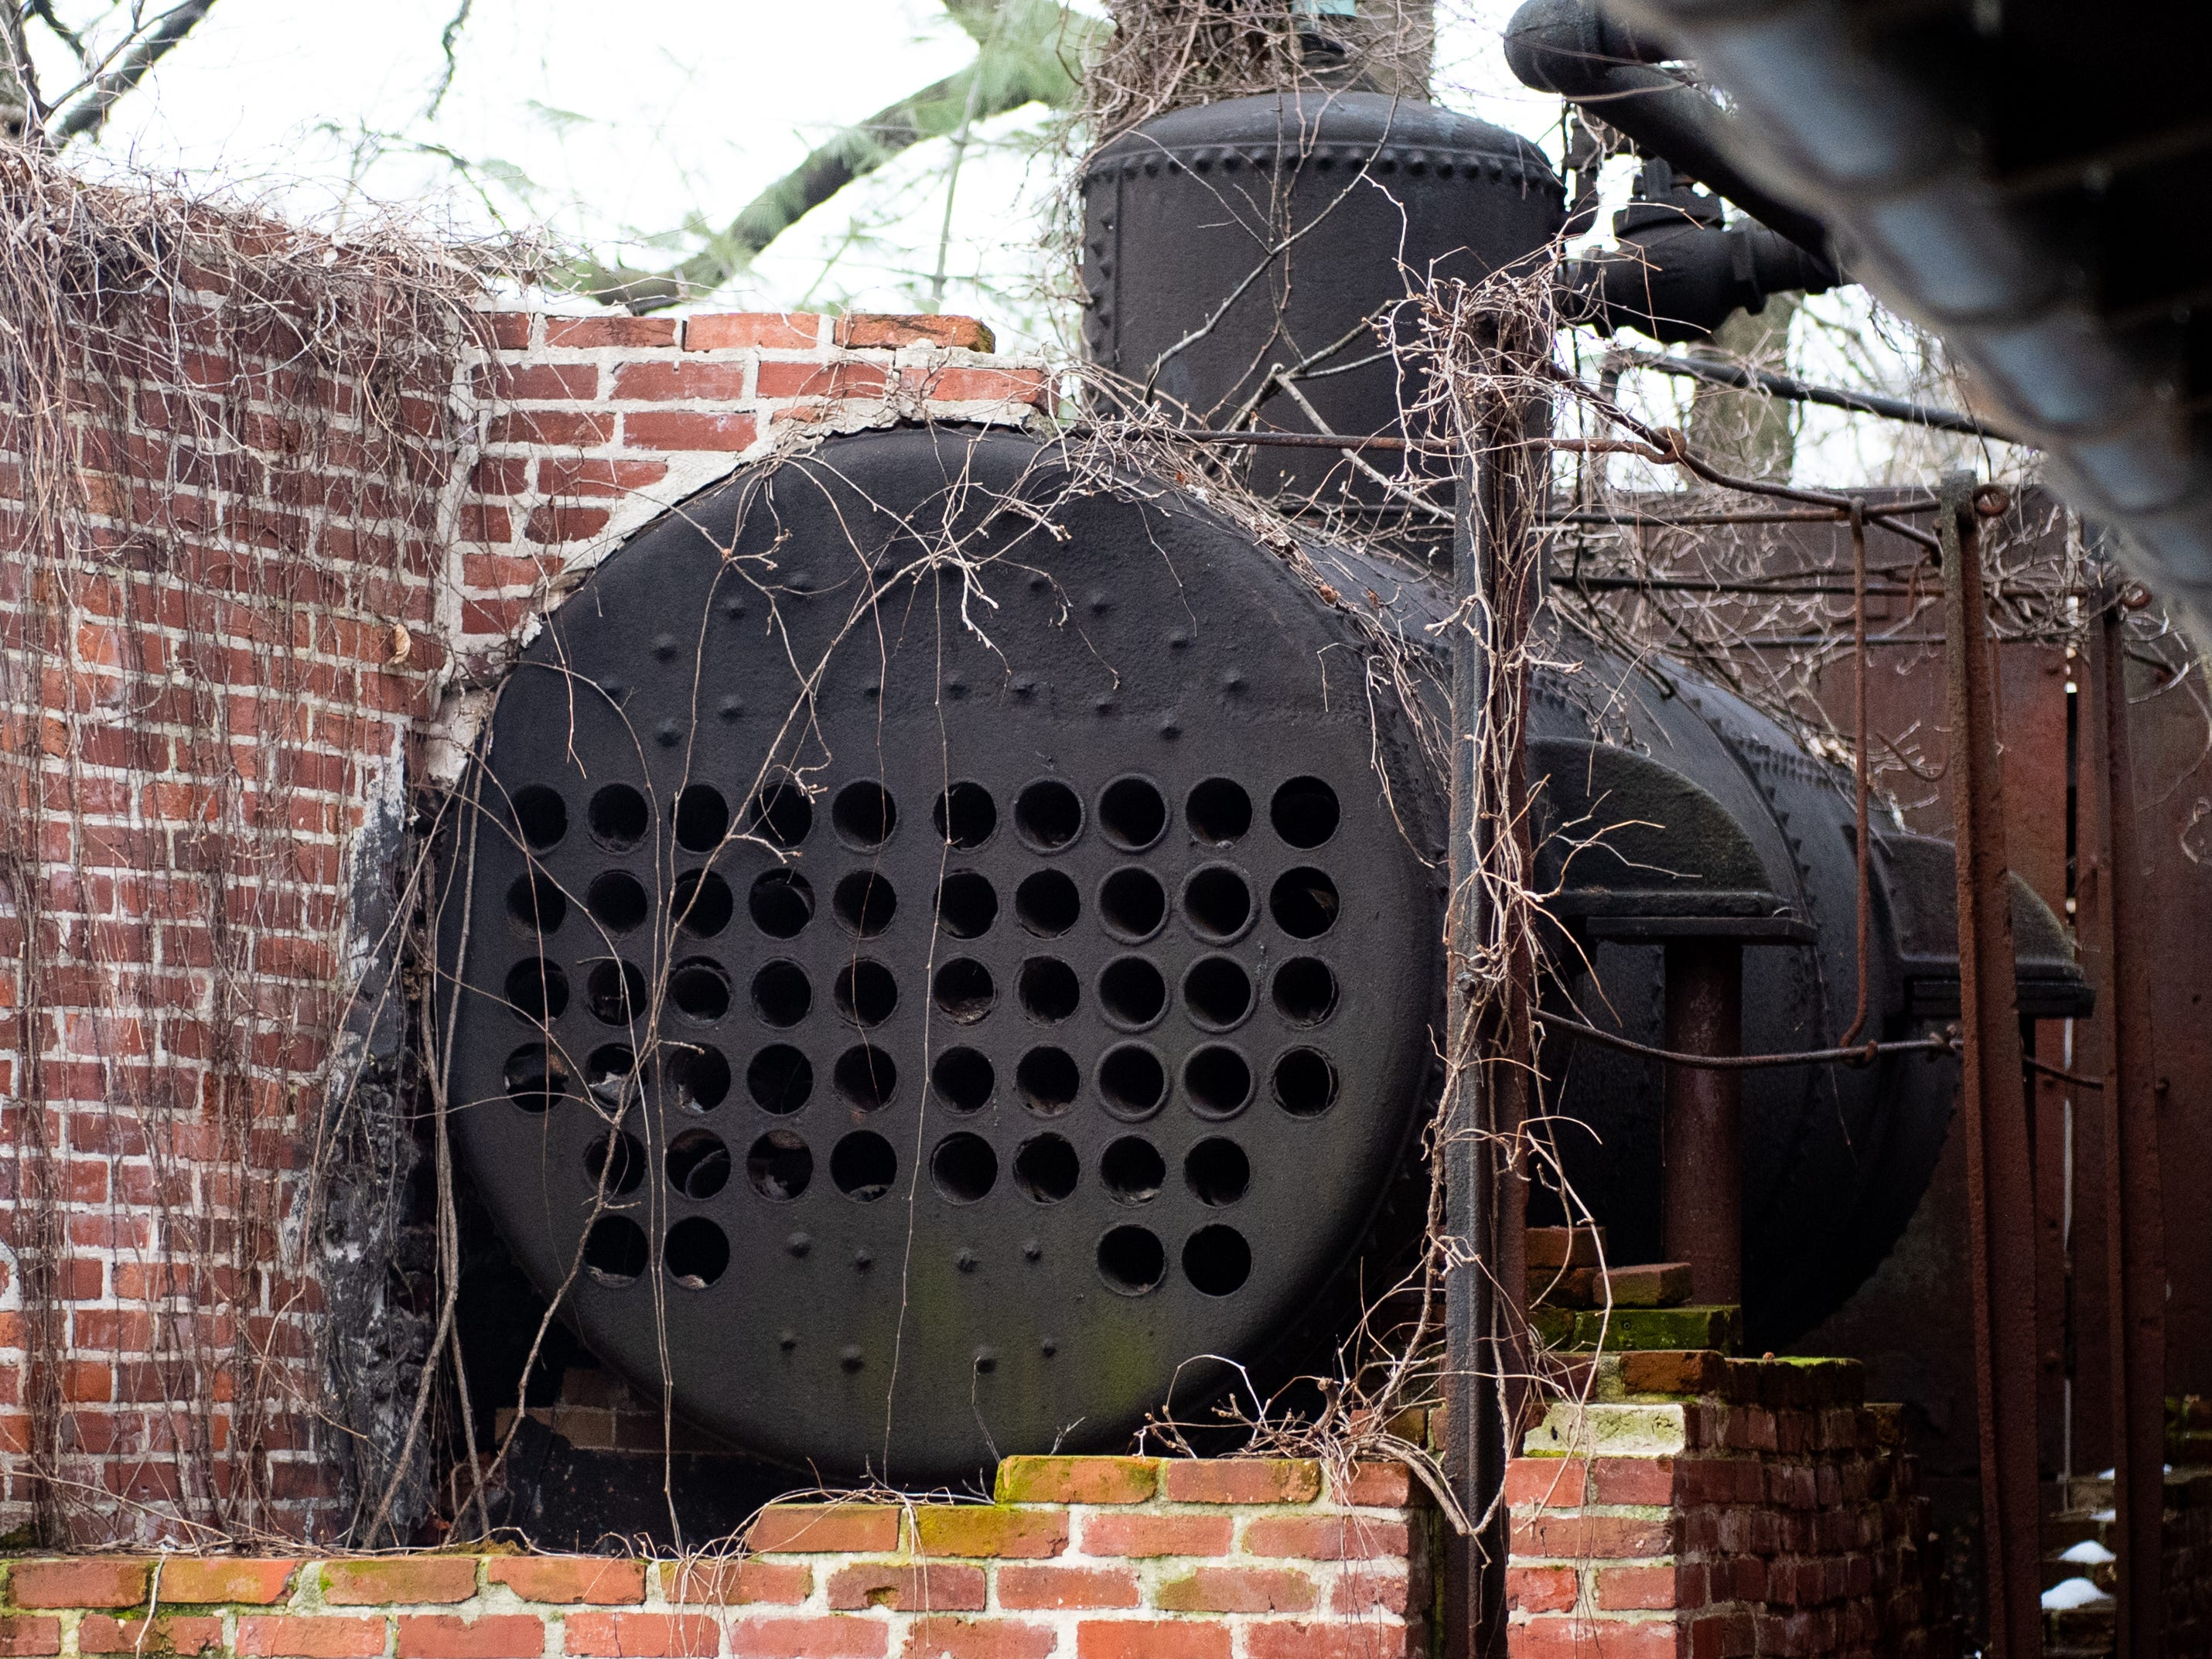 An old train engine sits in the Biergarten at Bube's Brewery, February 22, 2019.